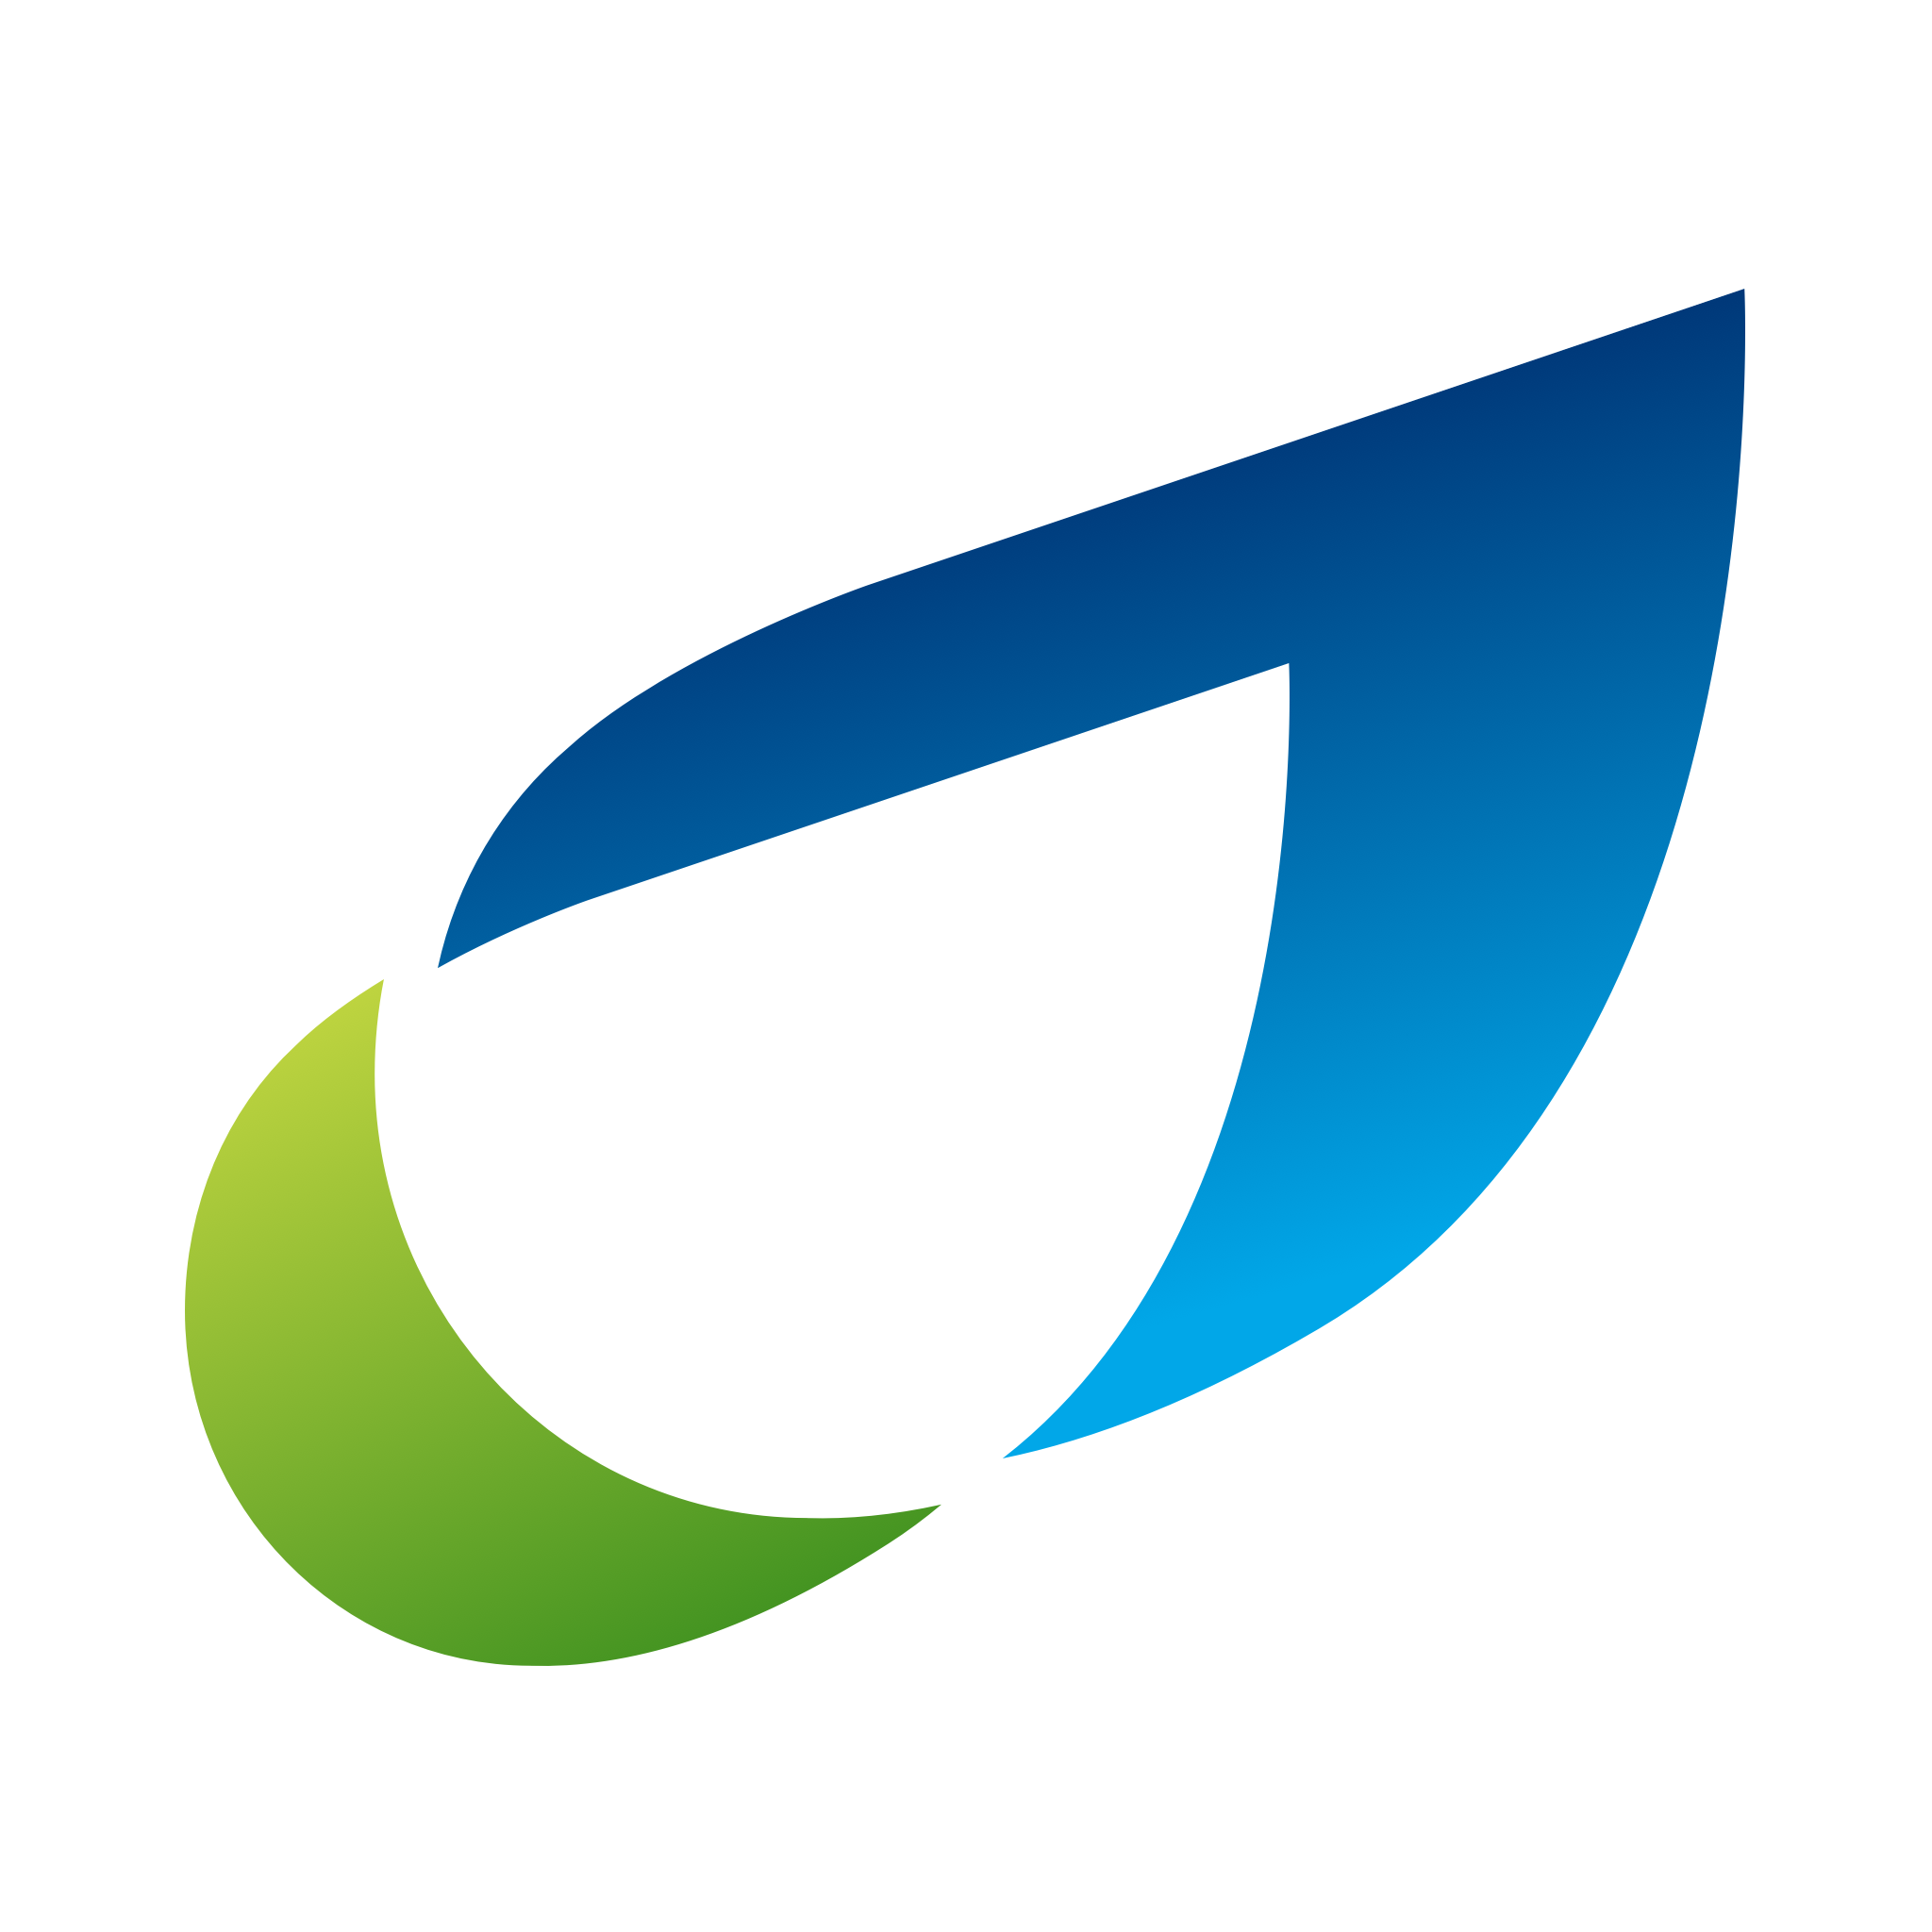 British gas logo clipart black and white stock Five ways British Gas App can help you manage your account - British Gas black and white stock